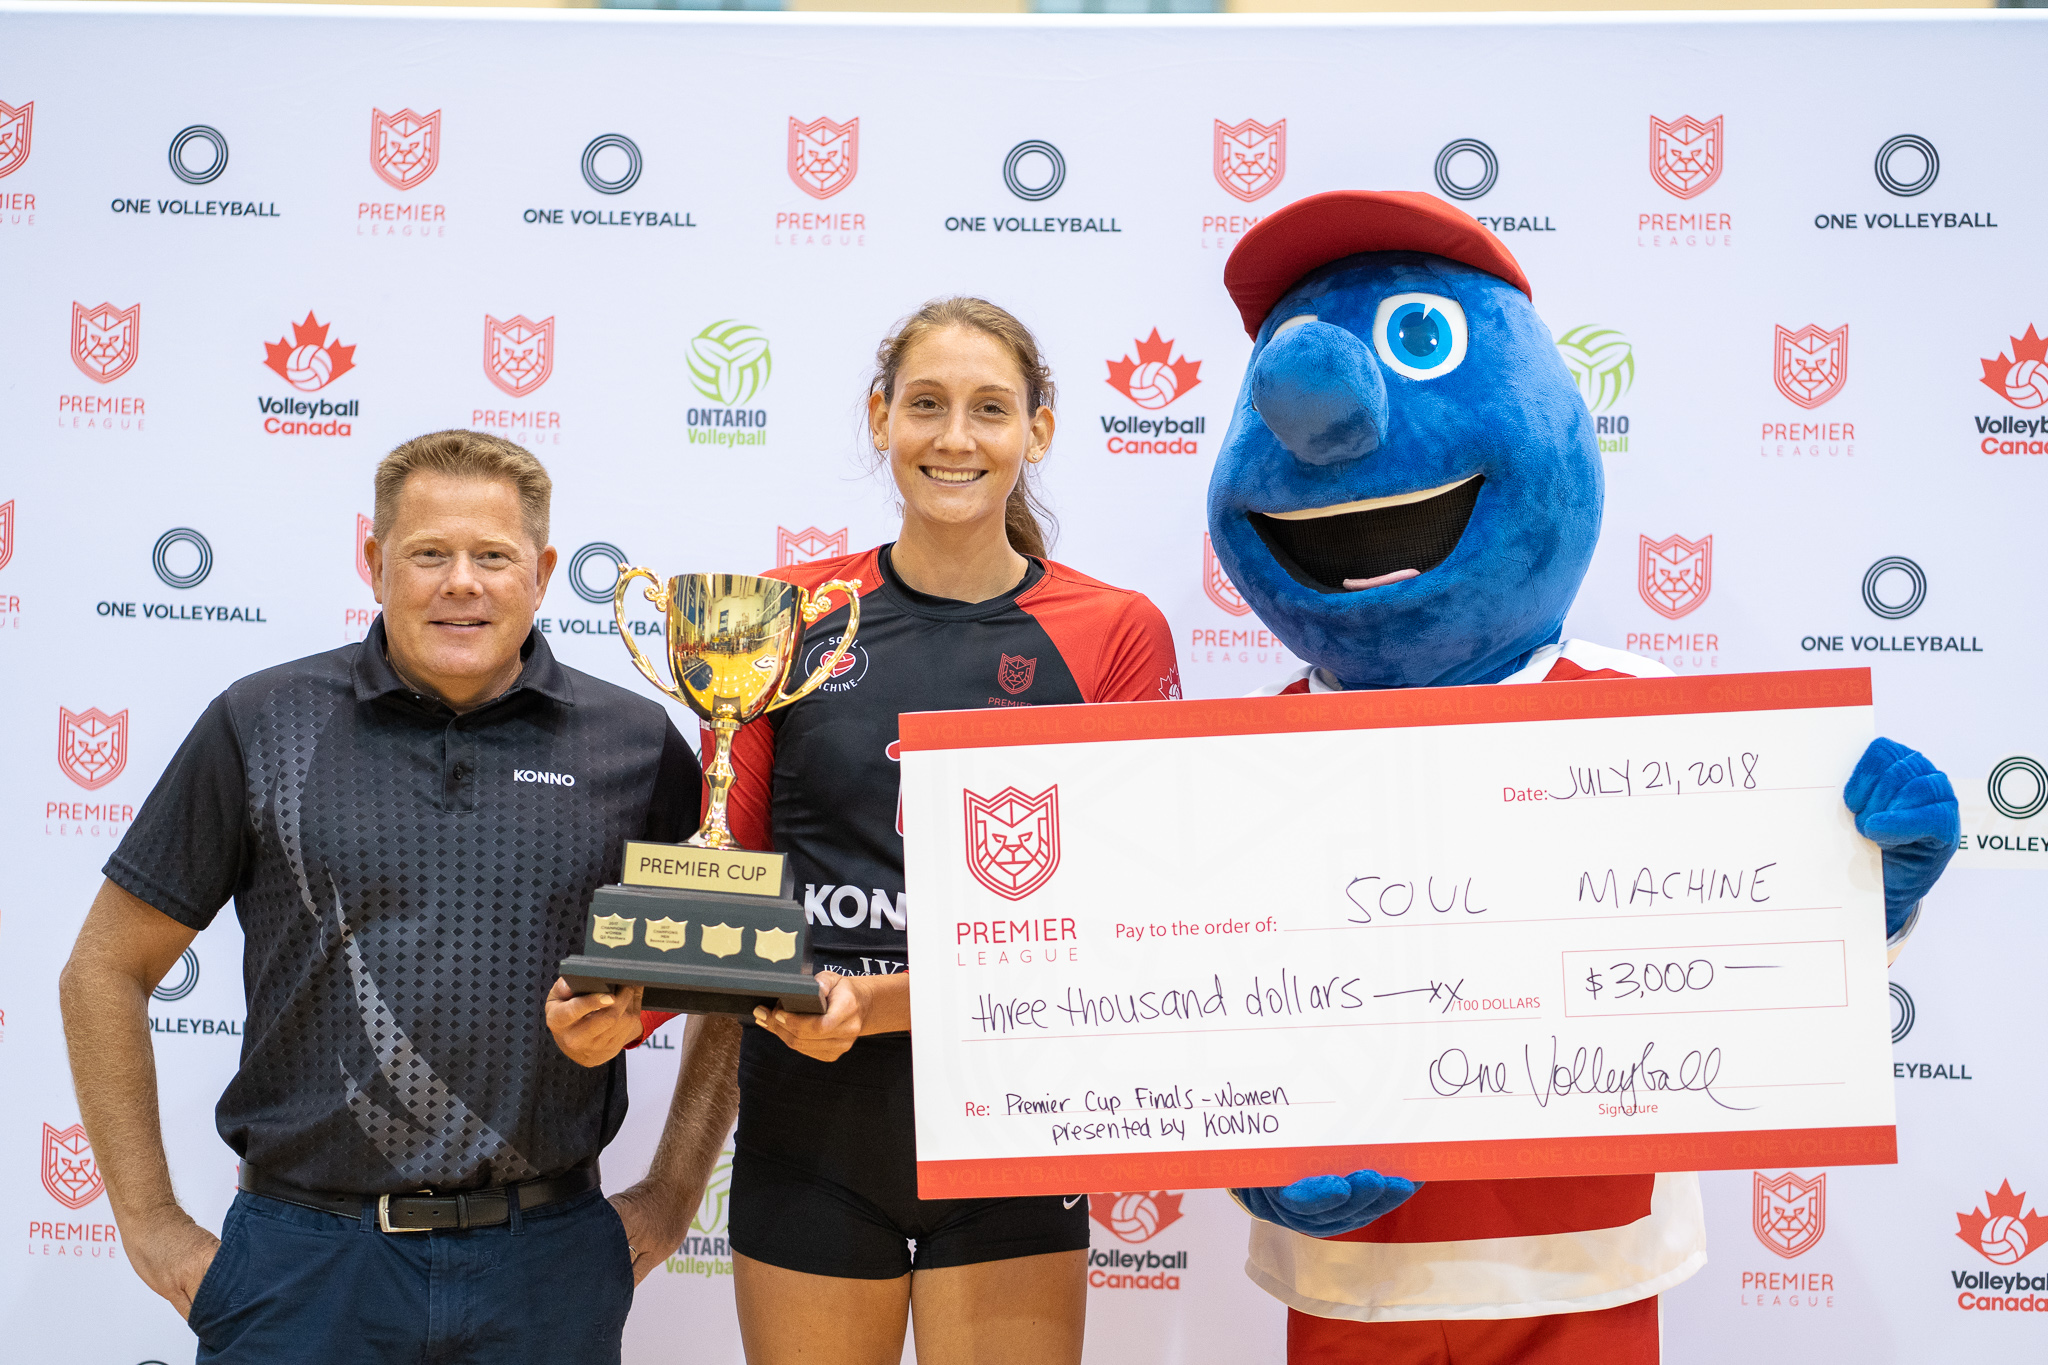 Women's Champions - Soul Machine Trophy presented by Jason Jackson (Konno) and cheque presented by Boston Pizza to team captain Taylor Brisebois